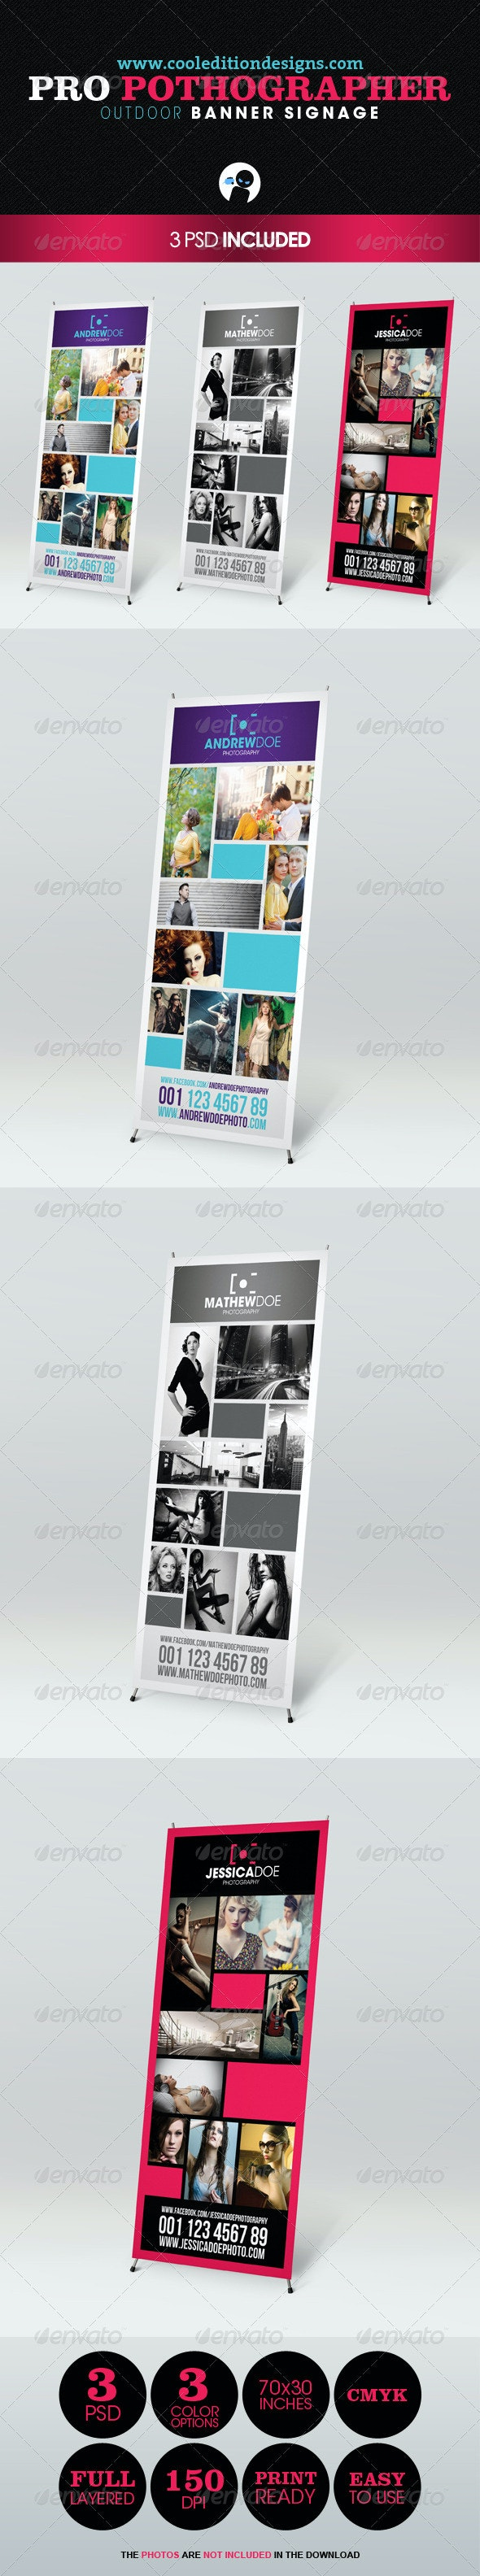 Pro Photographer Outdoor Banner Signage - Signage Print Templates